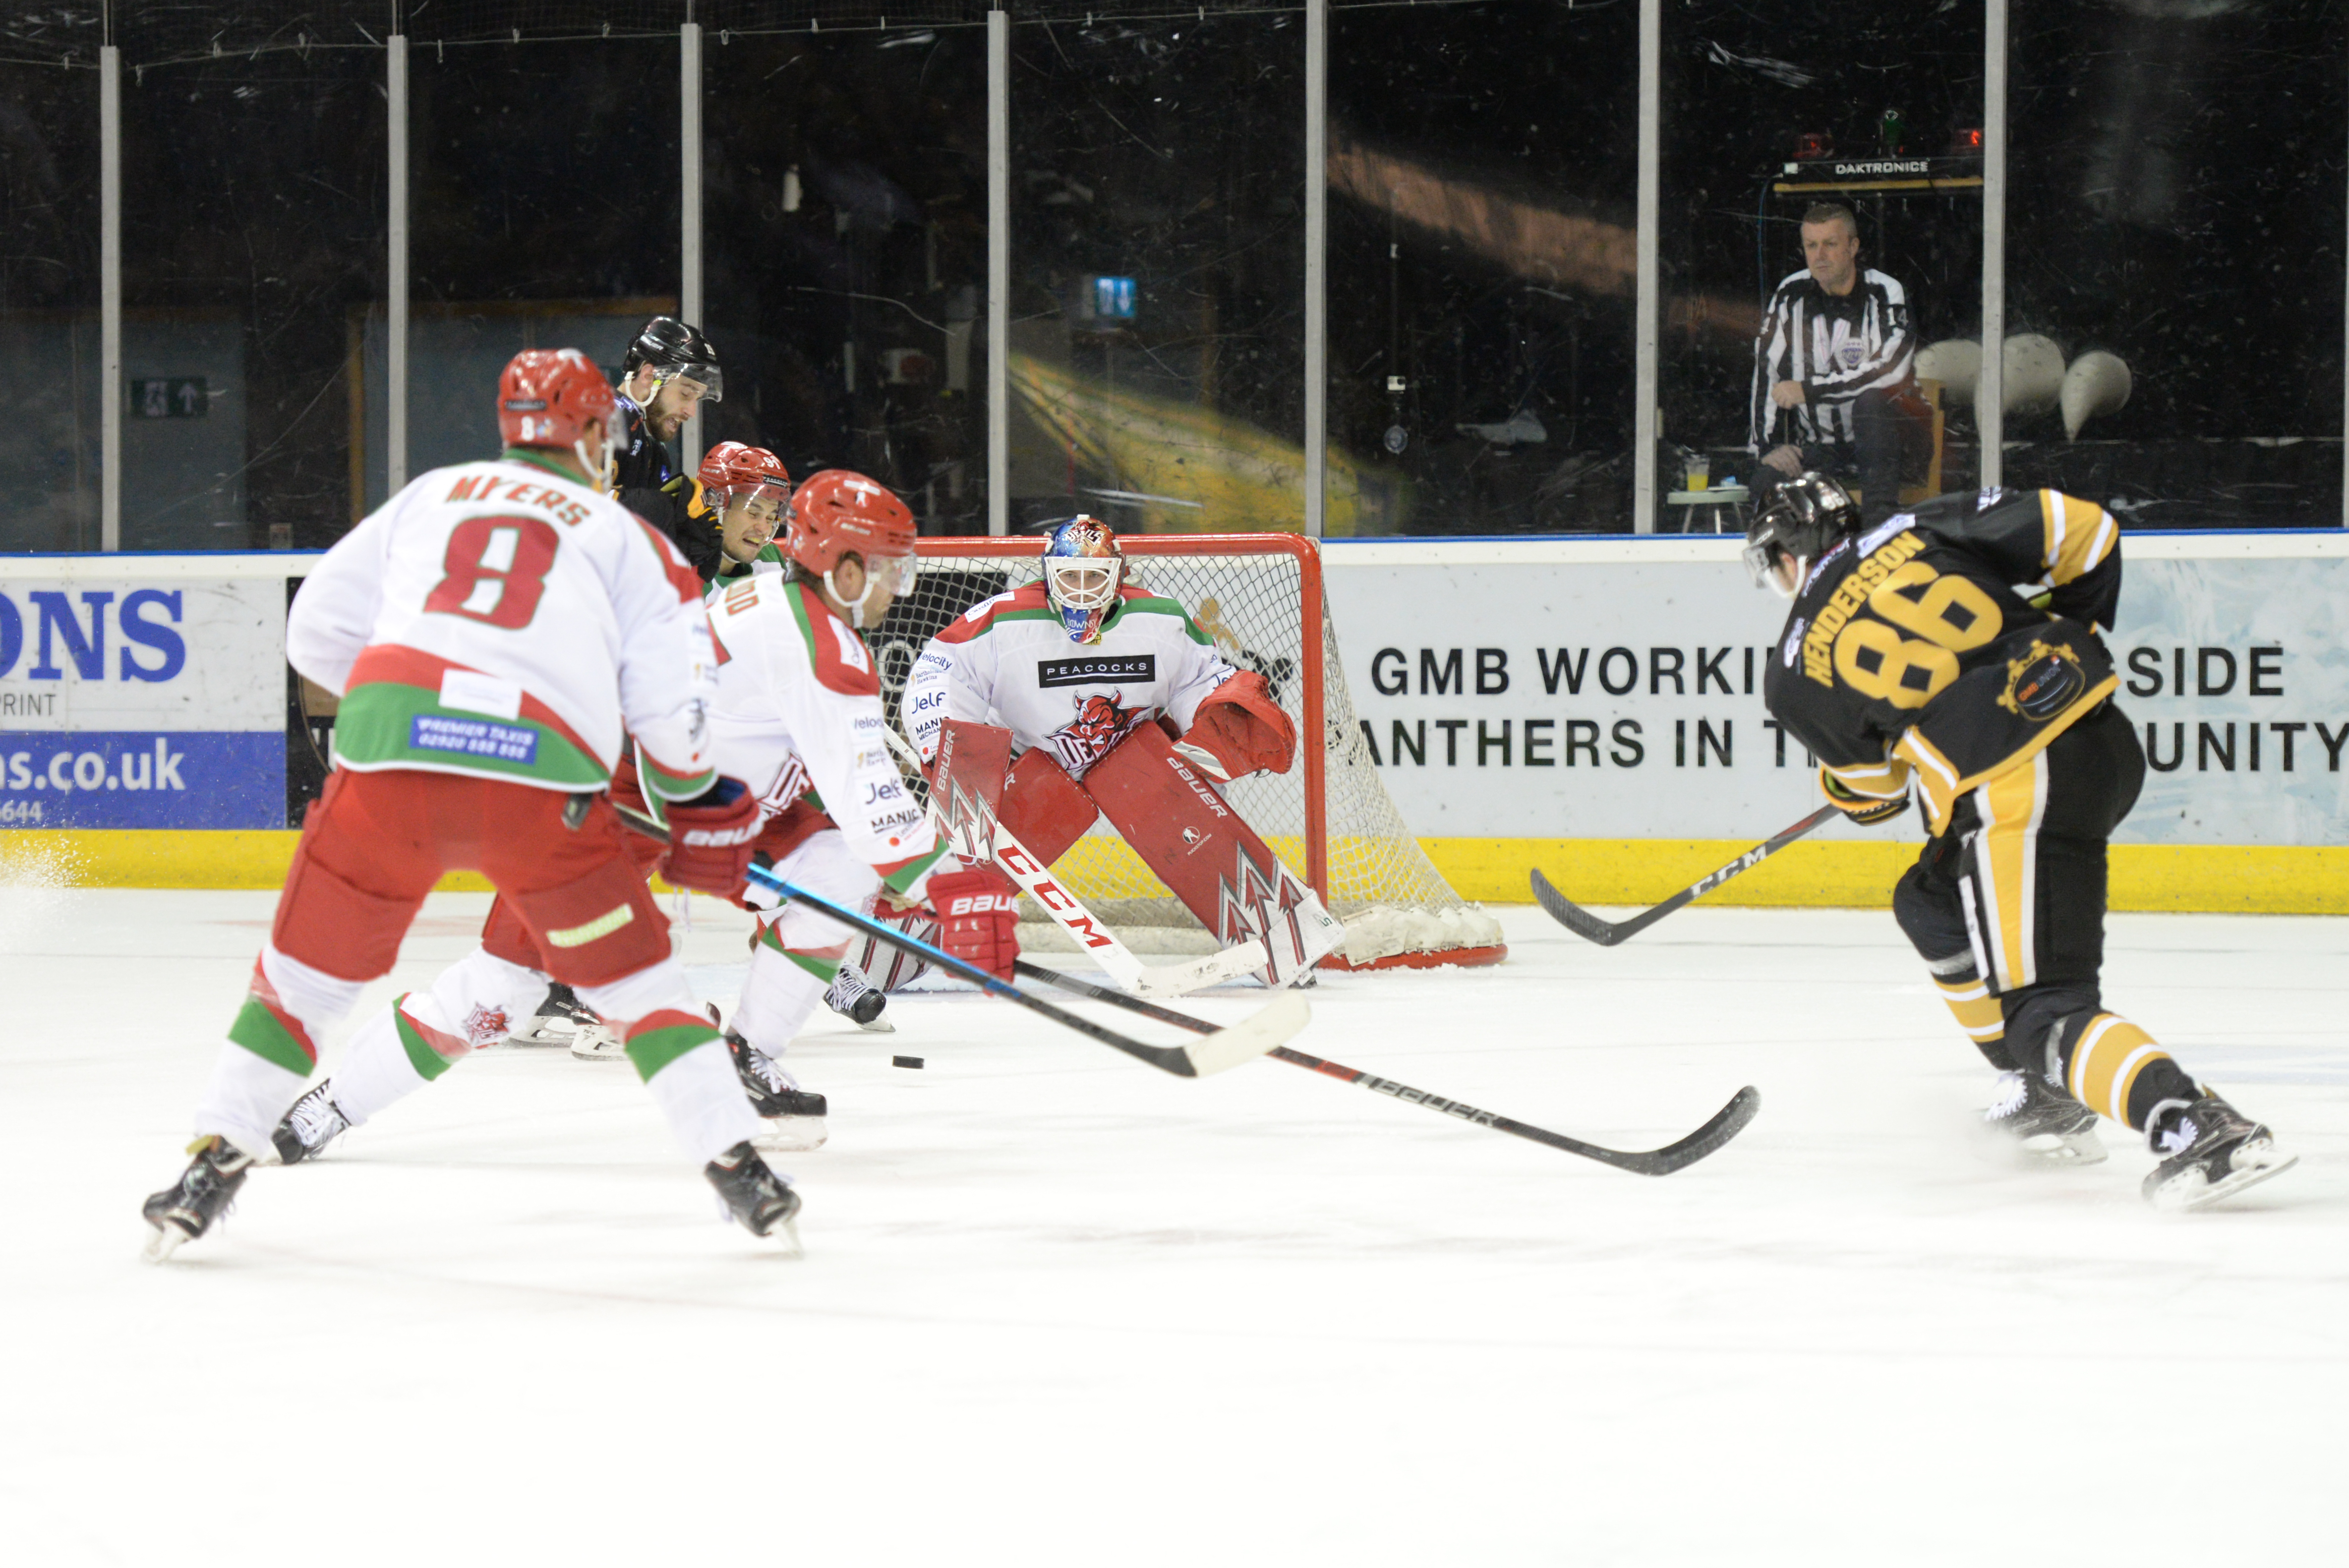 Panthers vs Devils: POFW! Top Image